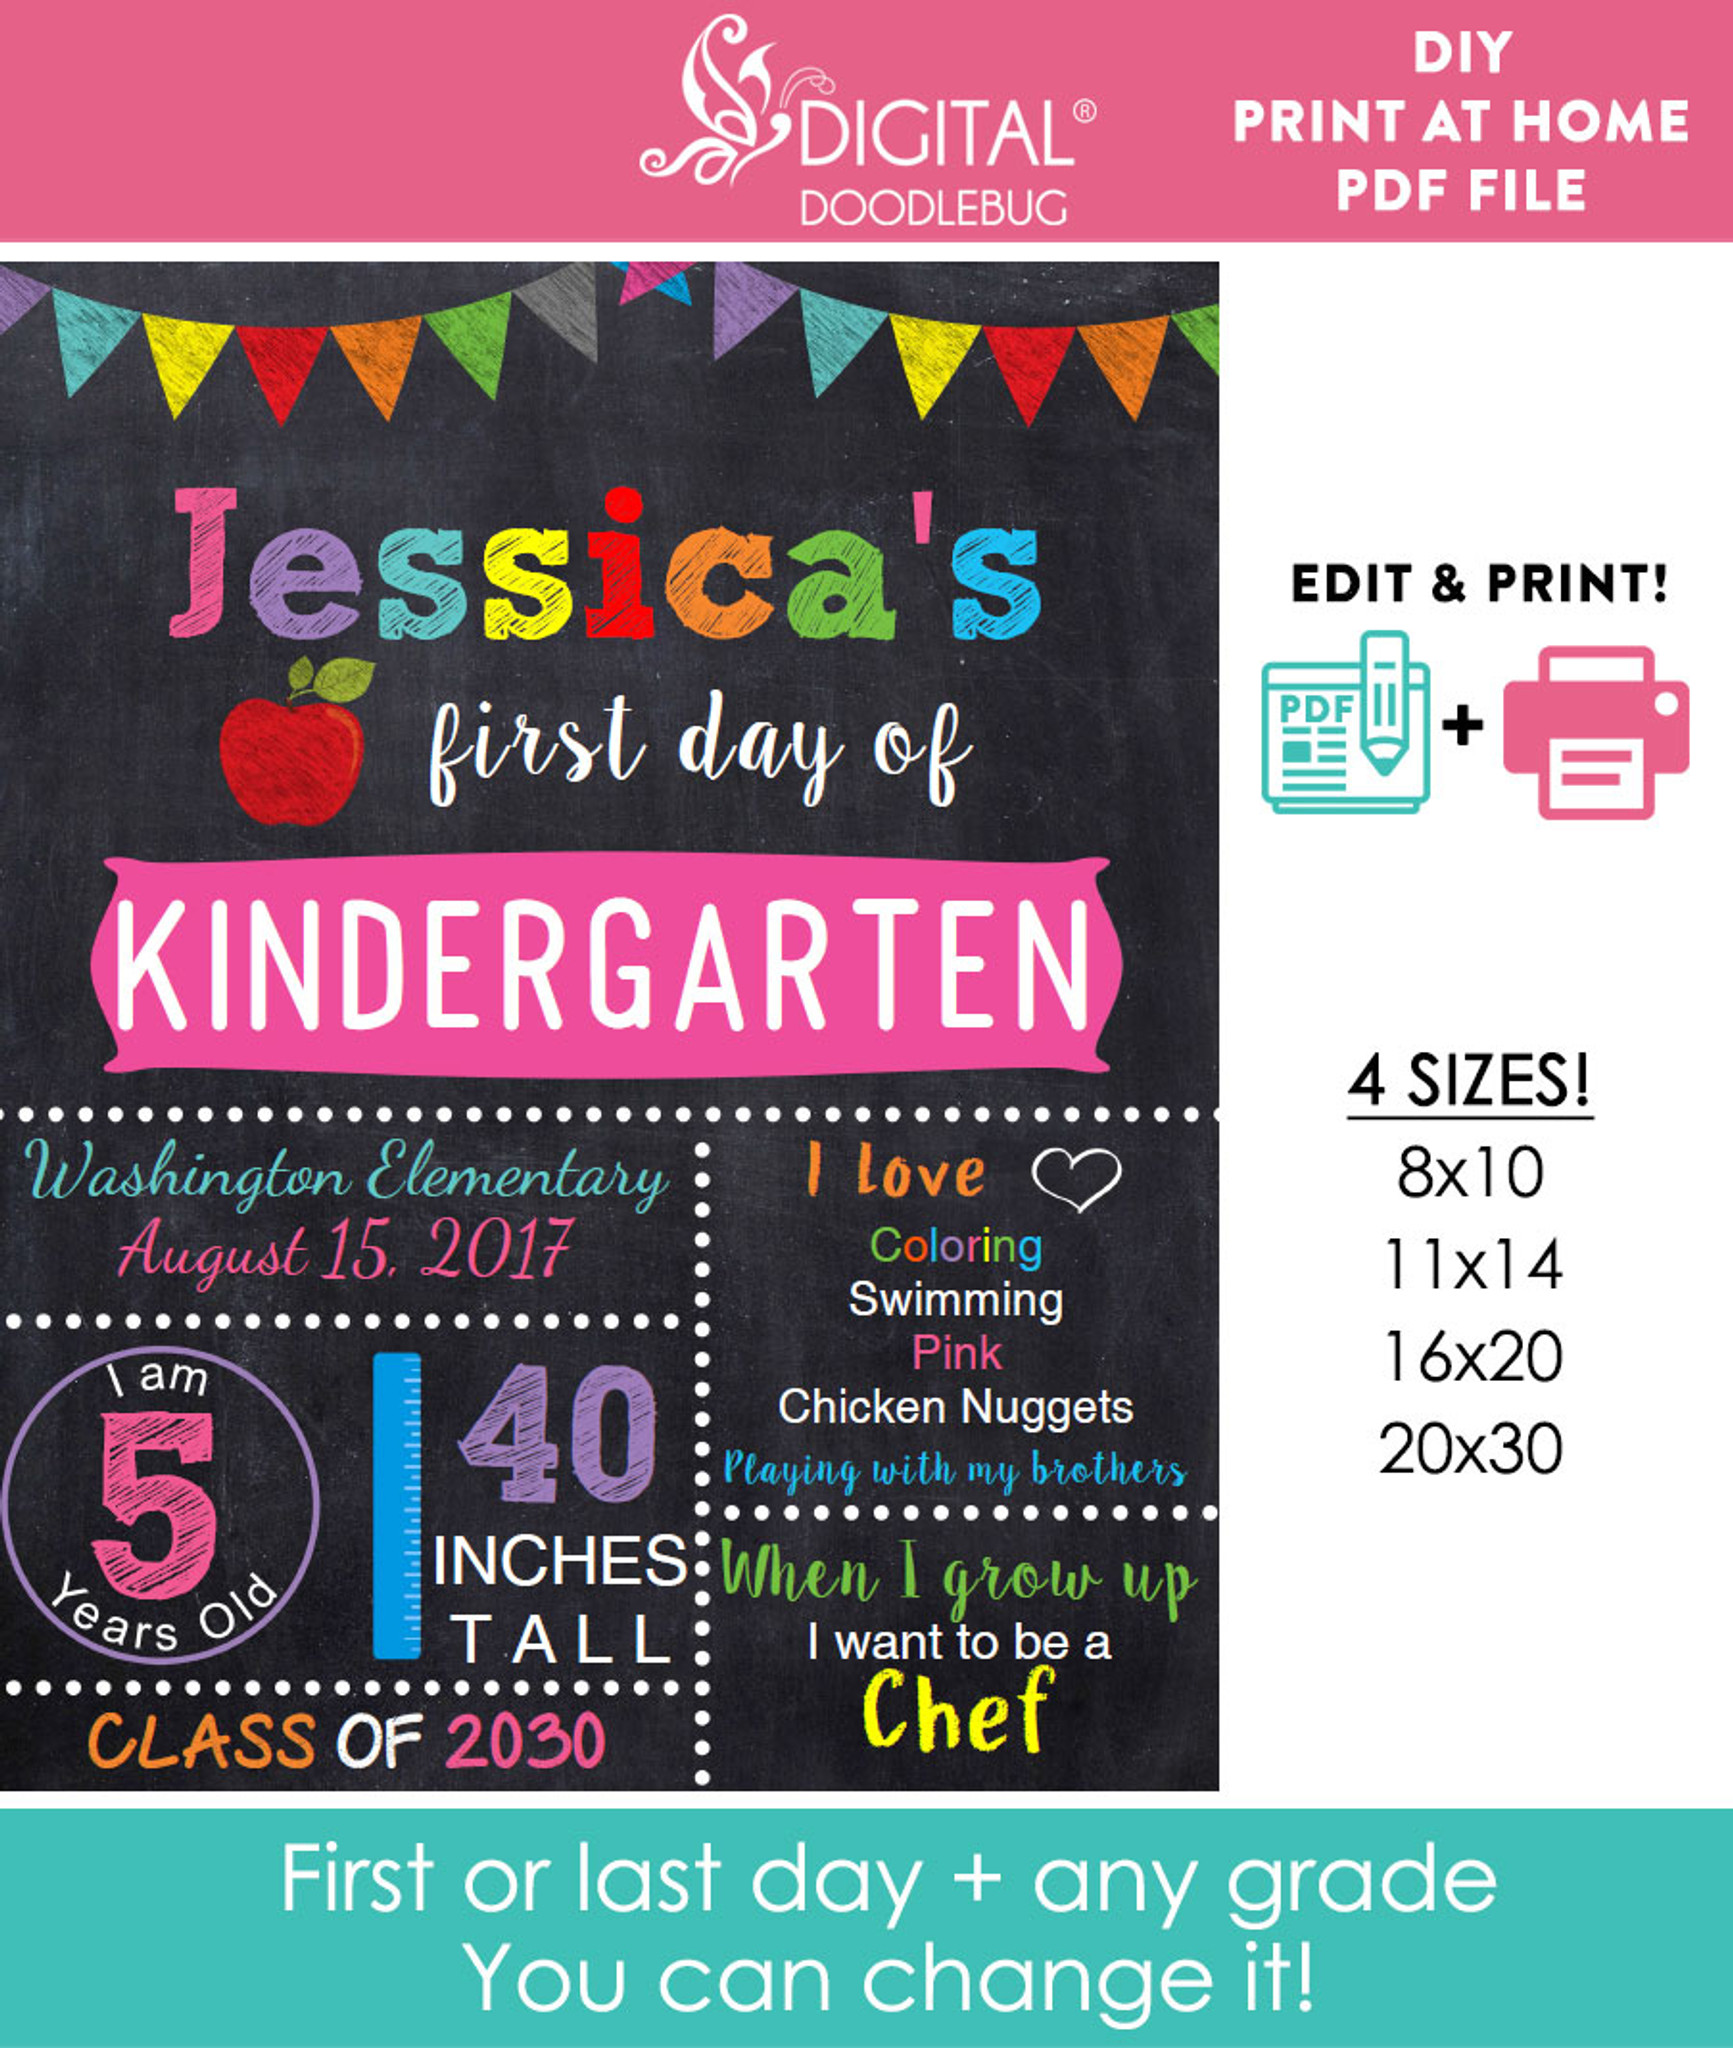 image about First Day of School Printable Sign known as Editable Gals Initial Working day of College or university Indicator Printable Poster